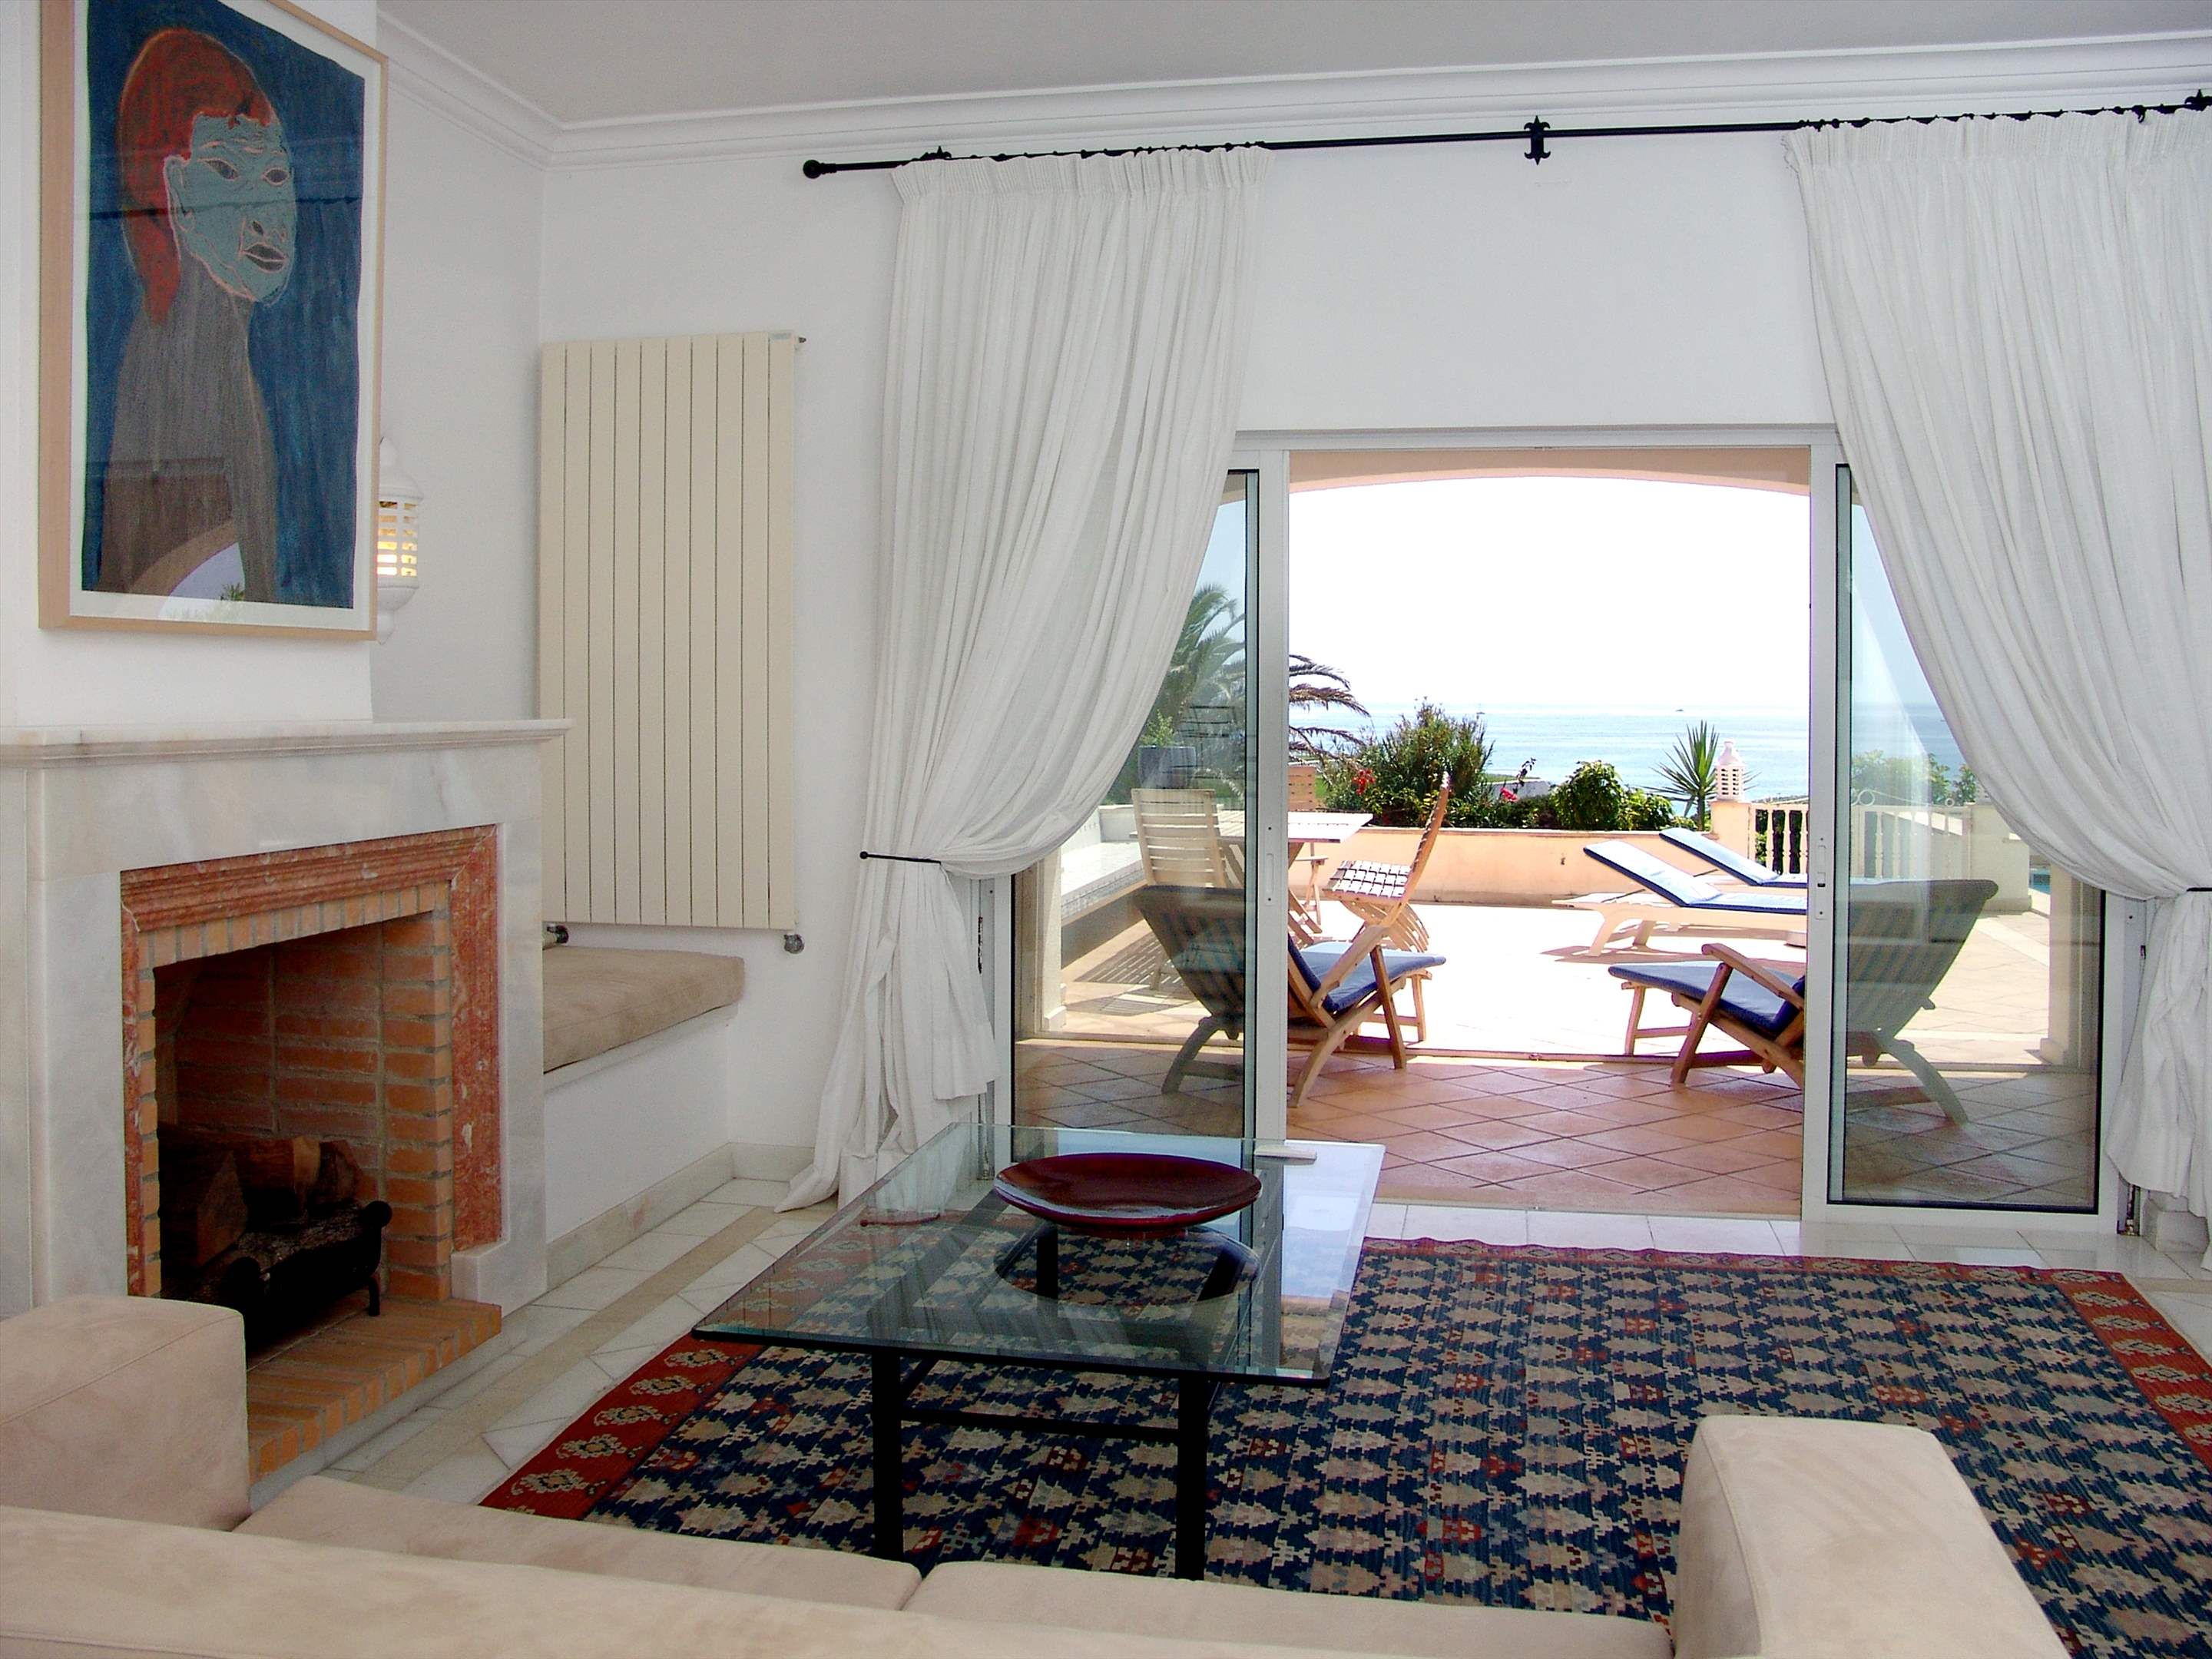 Villas Louisa, 5 bedroom, 5 bedroom villa in Vale do Lobo, Algarve Photo #6